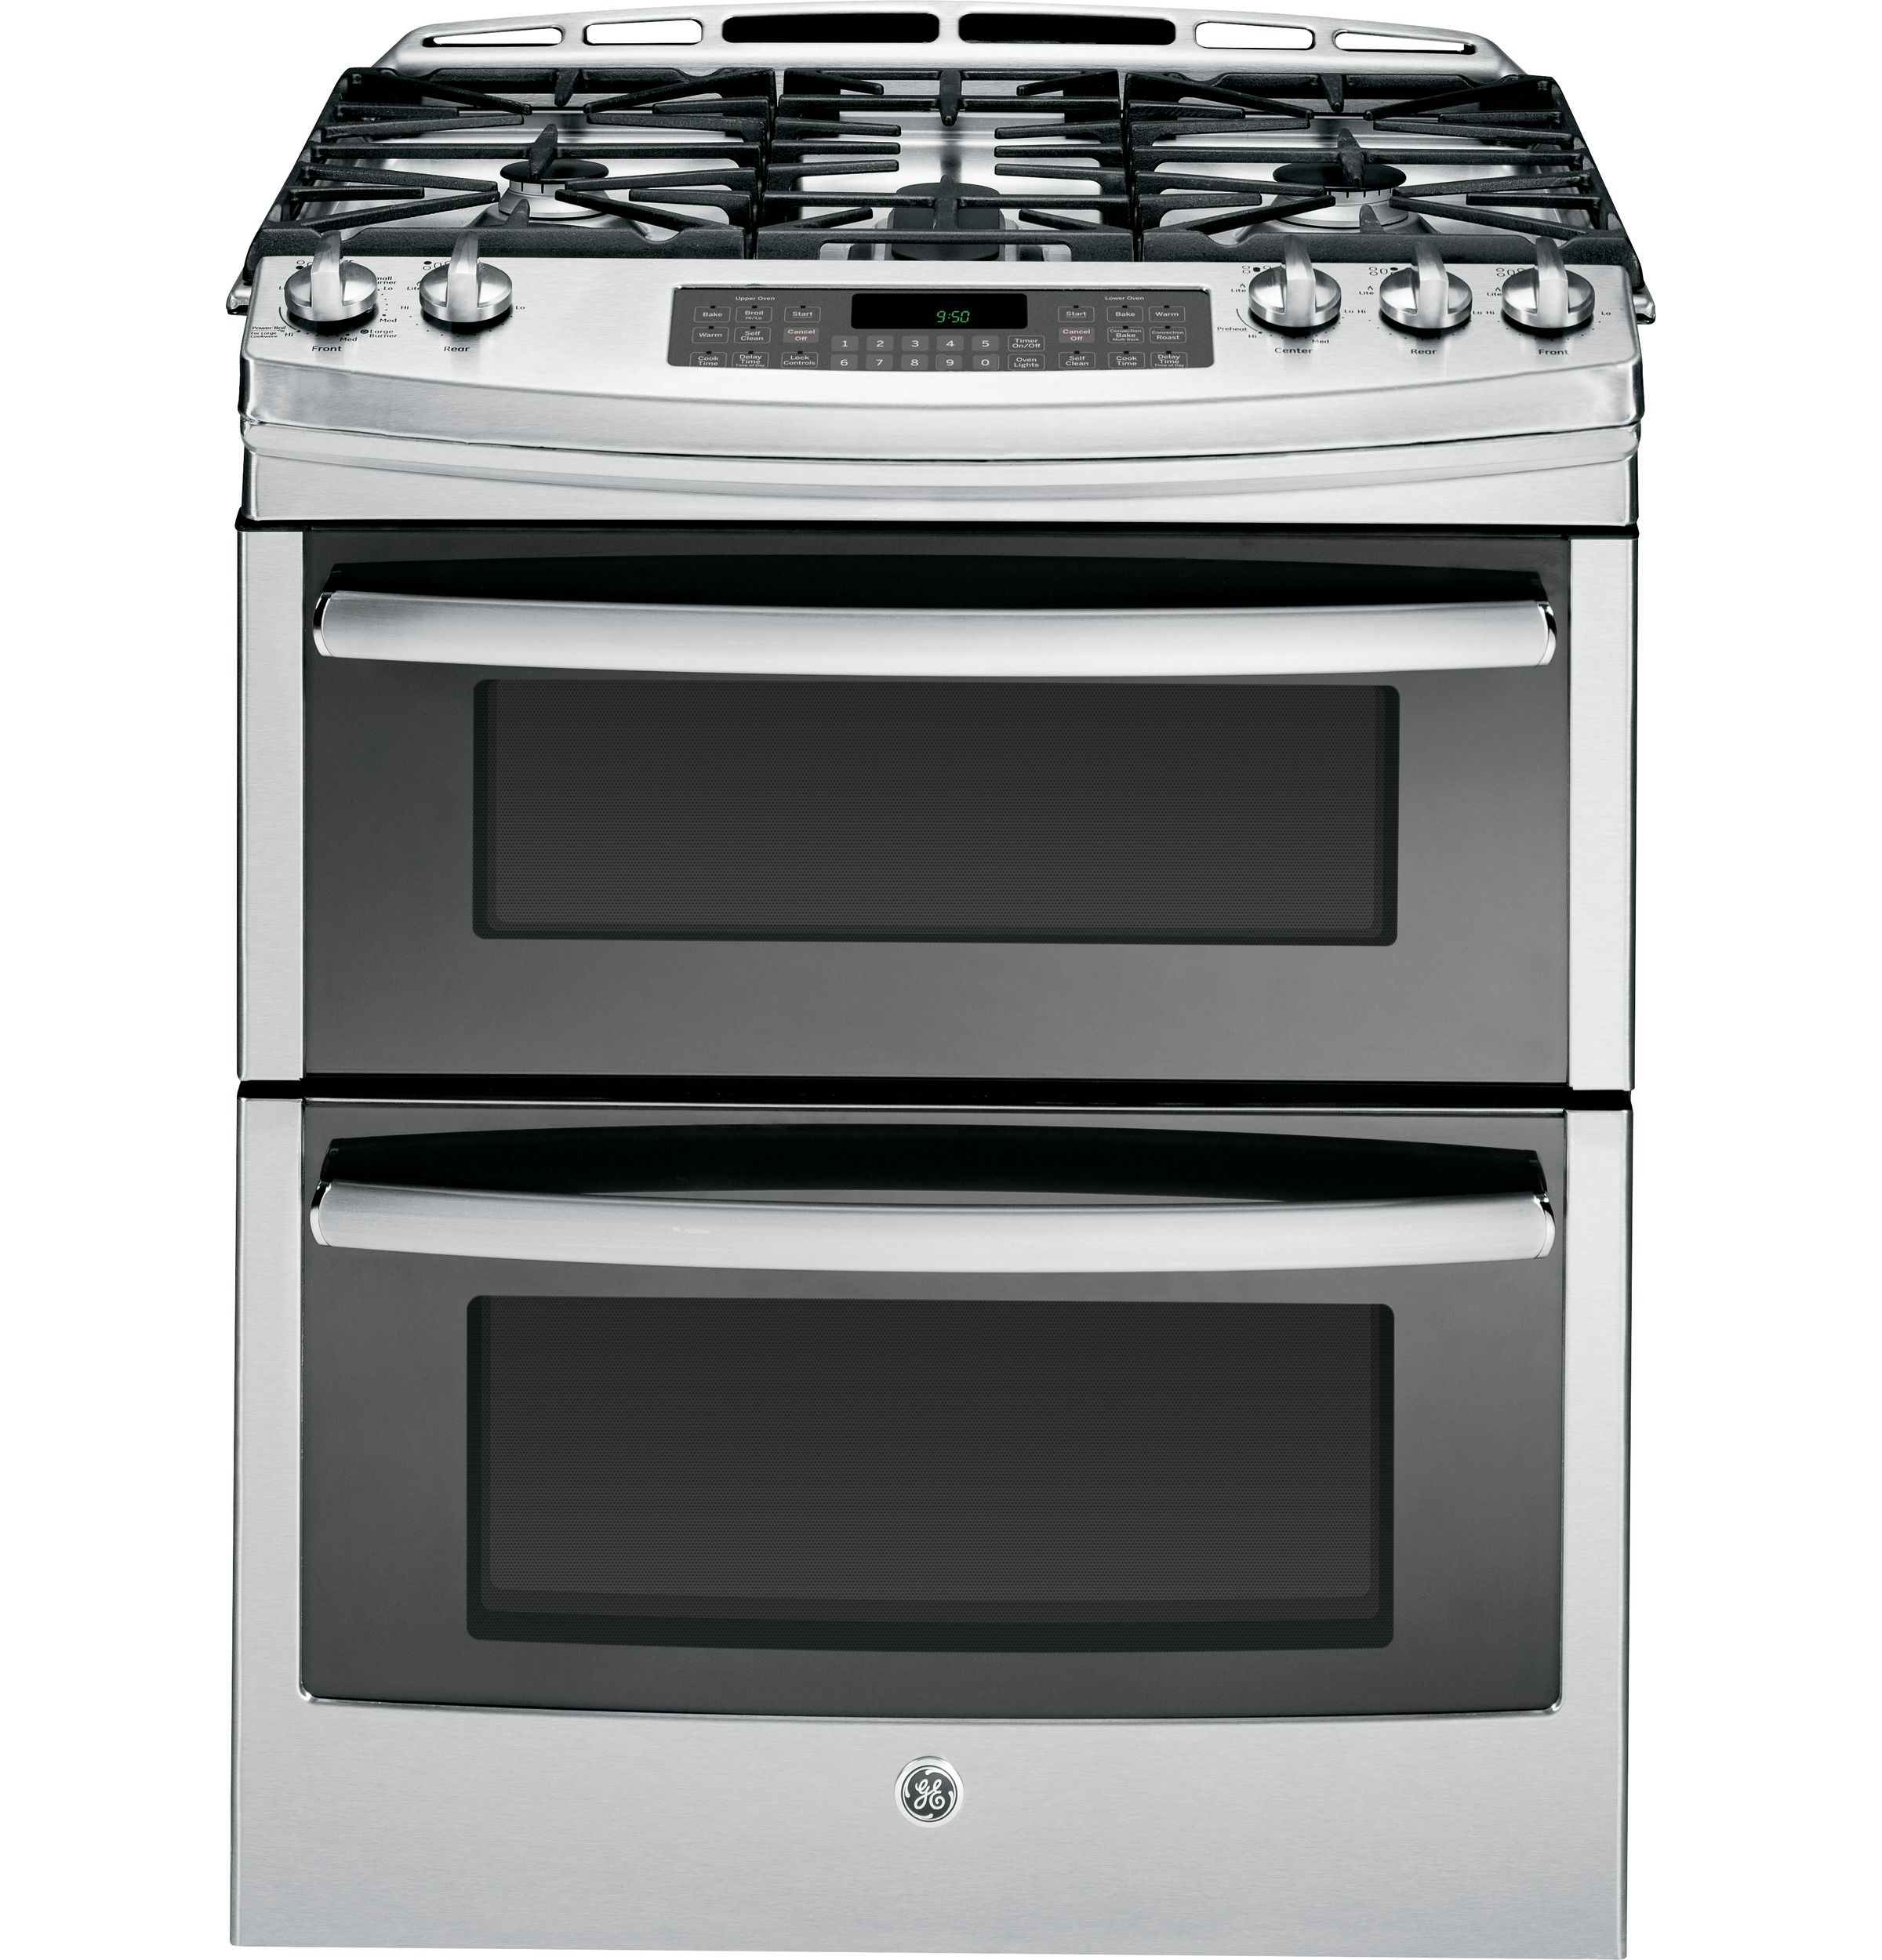 Ge S Industry First Slide In Double Oven Gas Range Allows Two